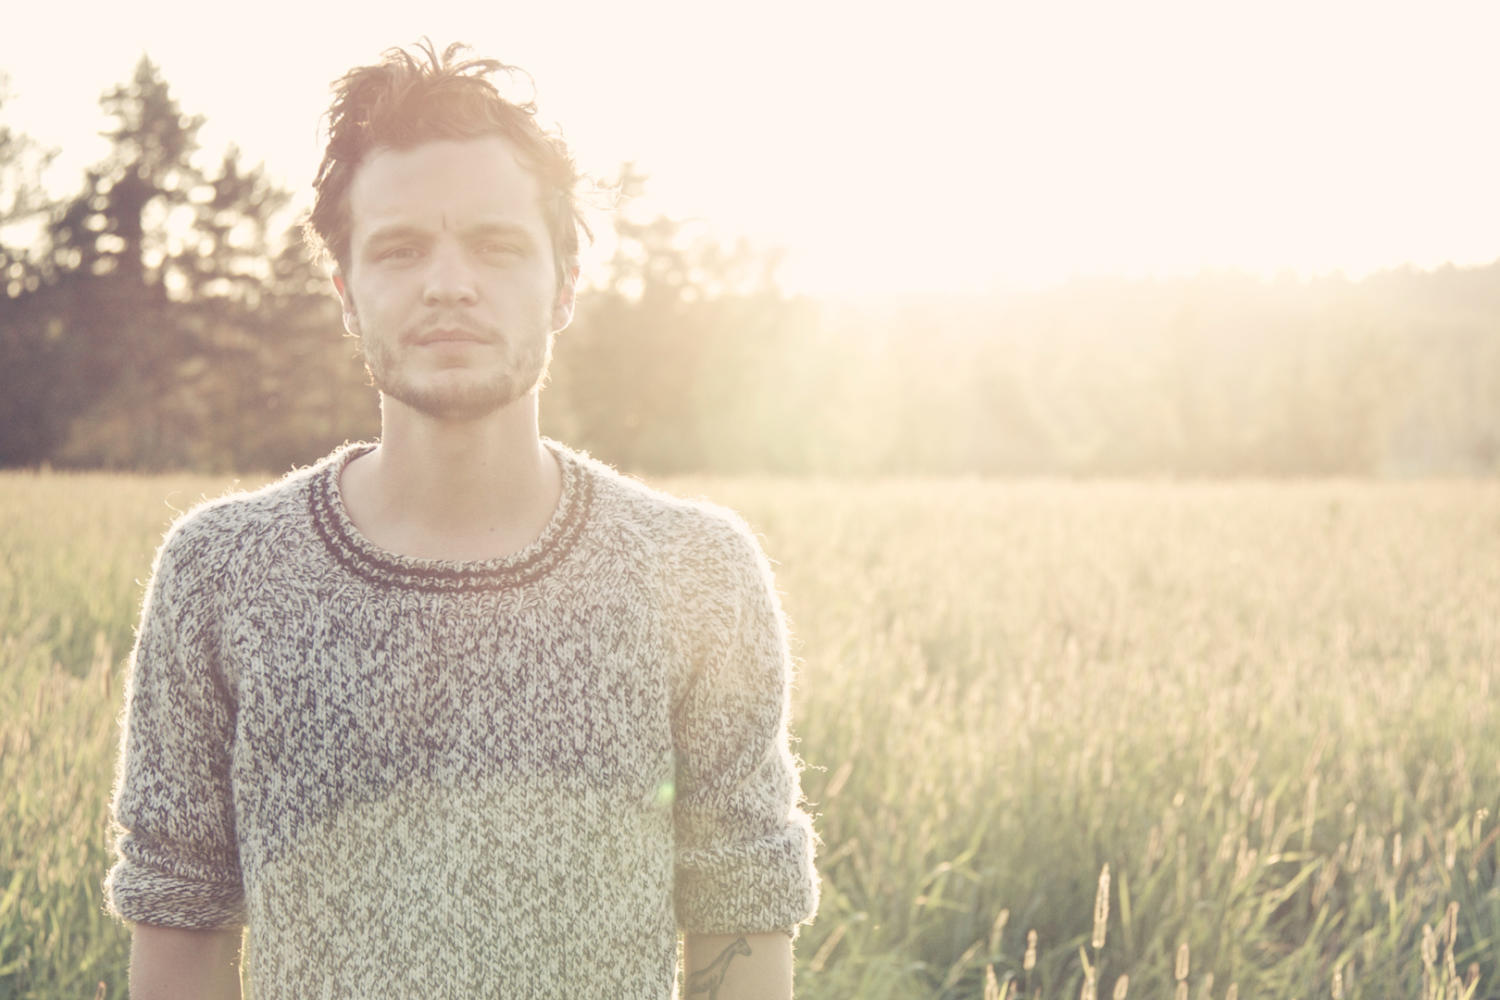 Watch The Tallest Man On Earth perform 'Sagres' on Conan